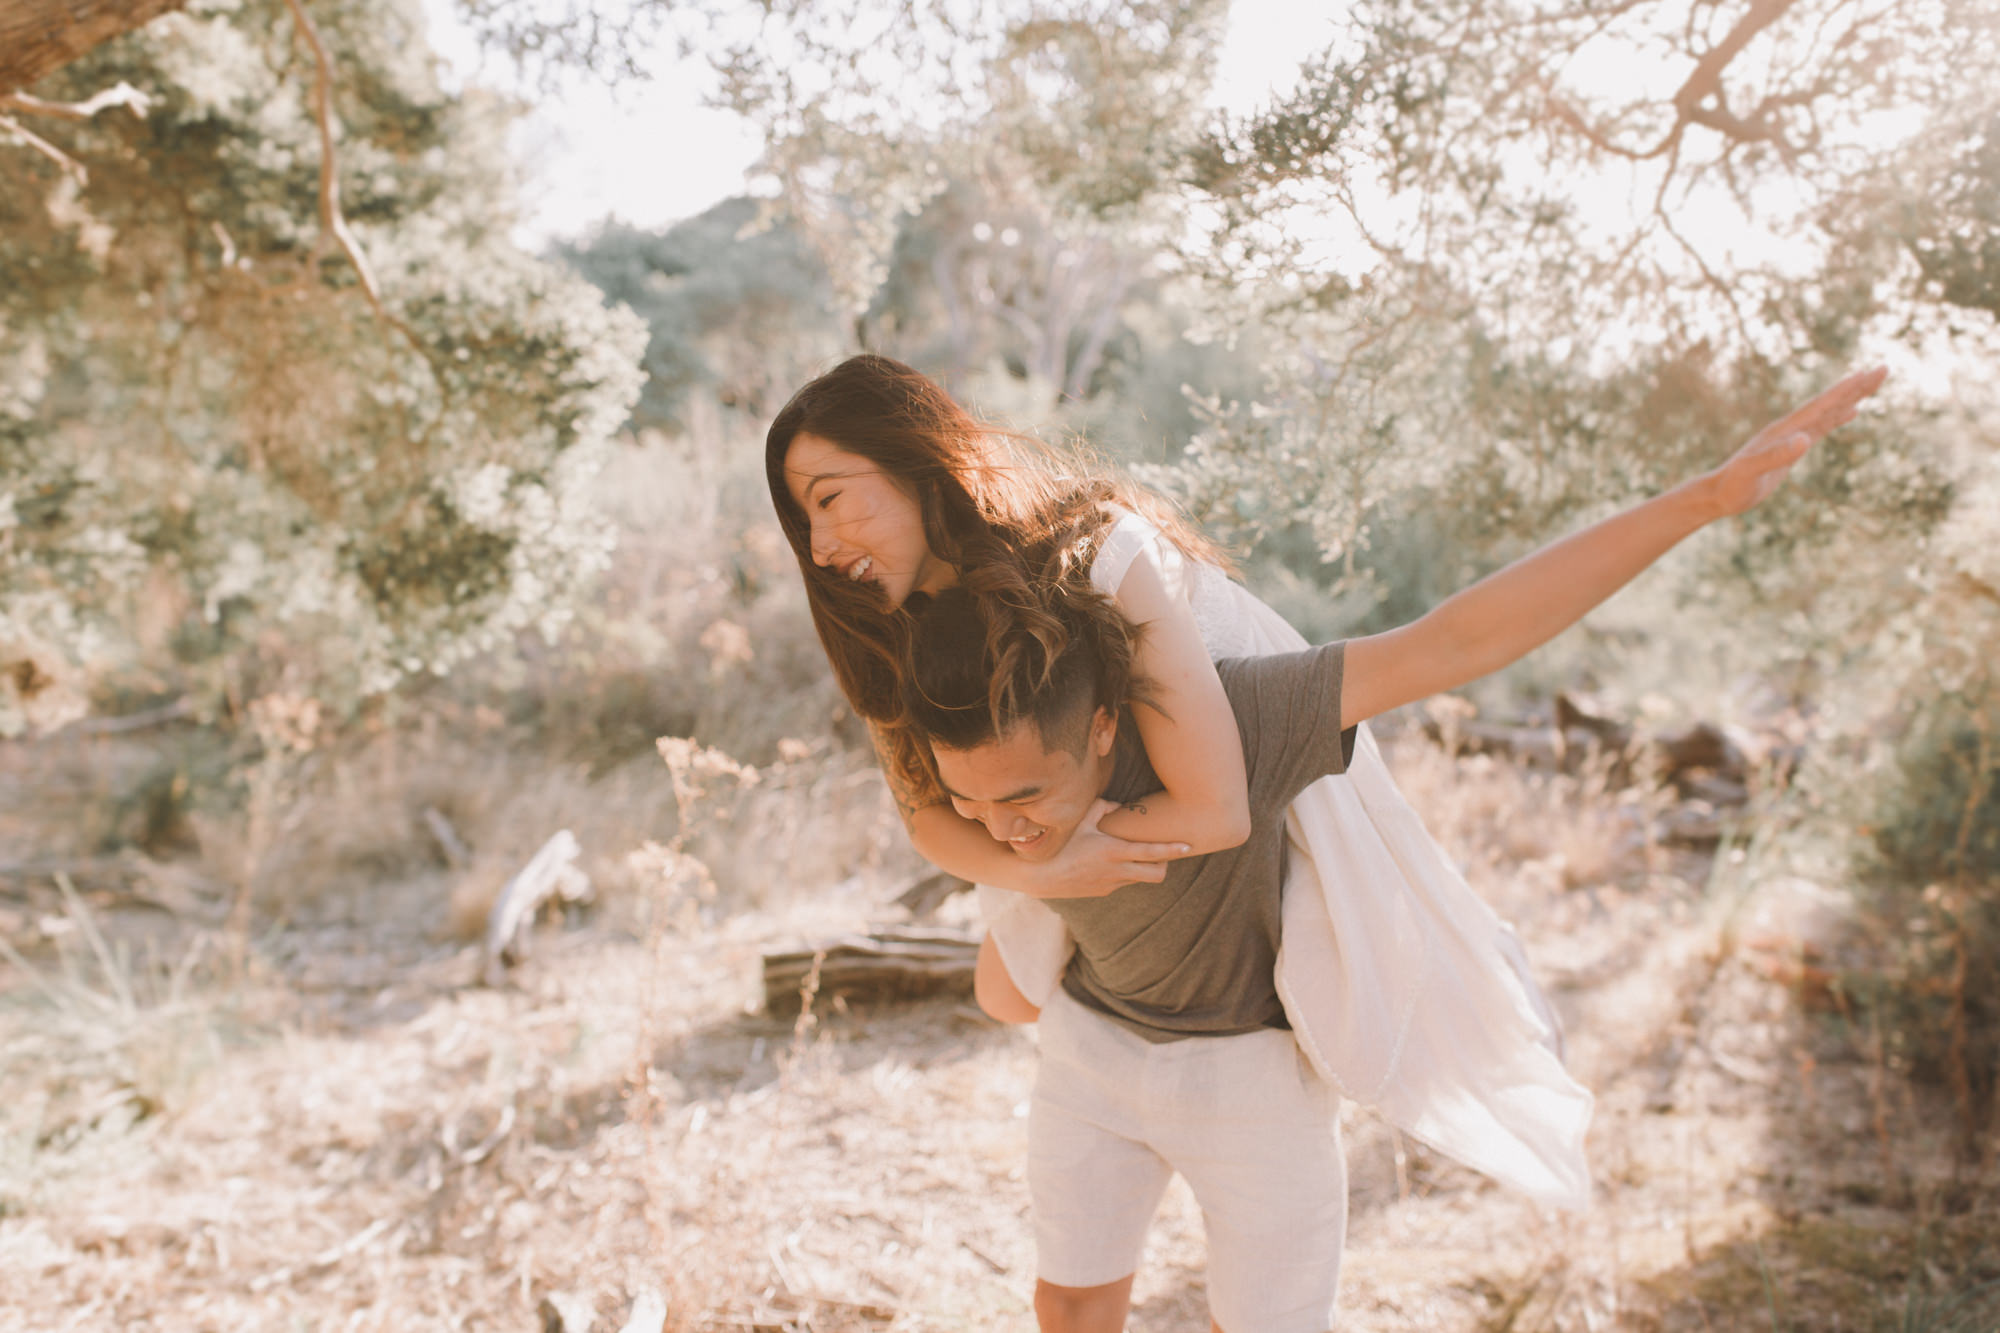 Mount Martha Natural Fun Candid Engagement Wedding Photography-10.jpg